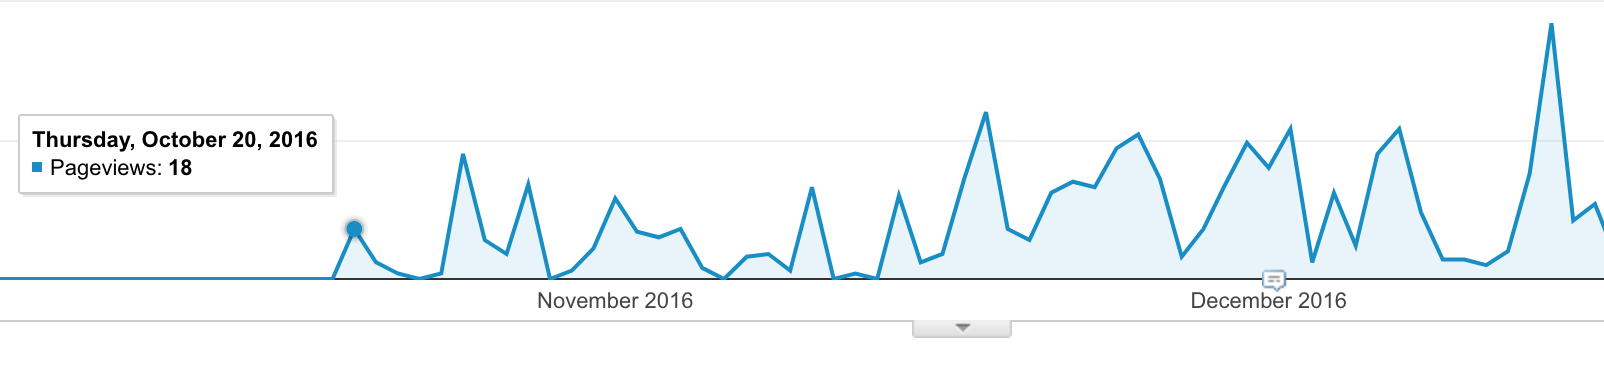 First pageviews!